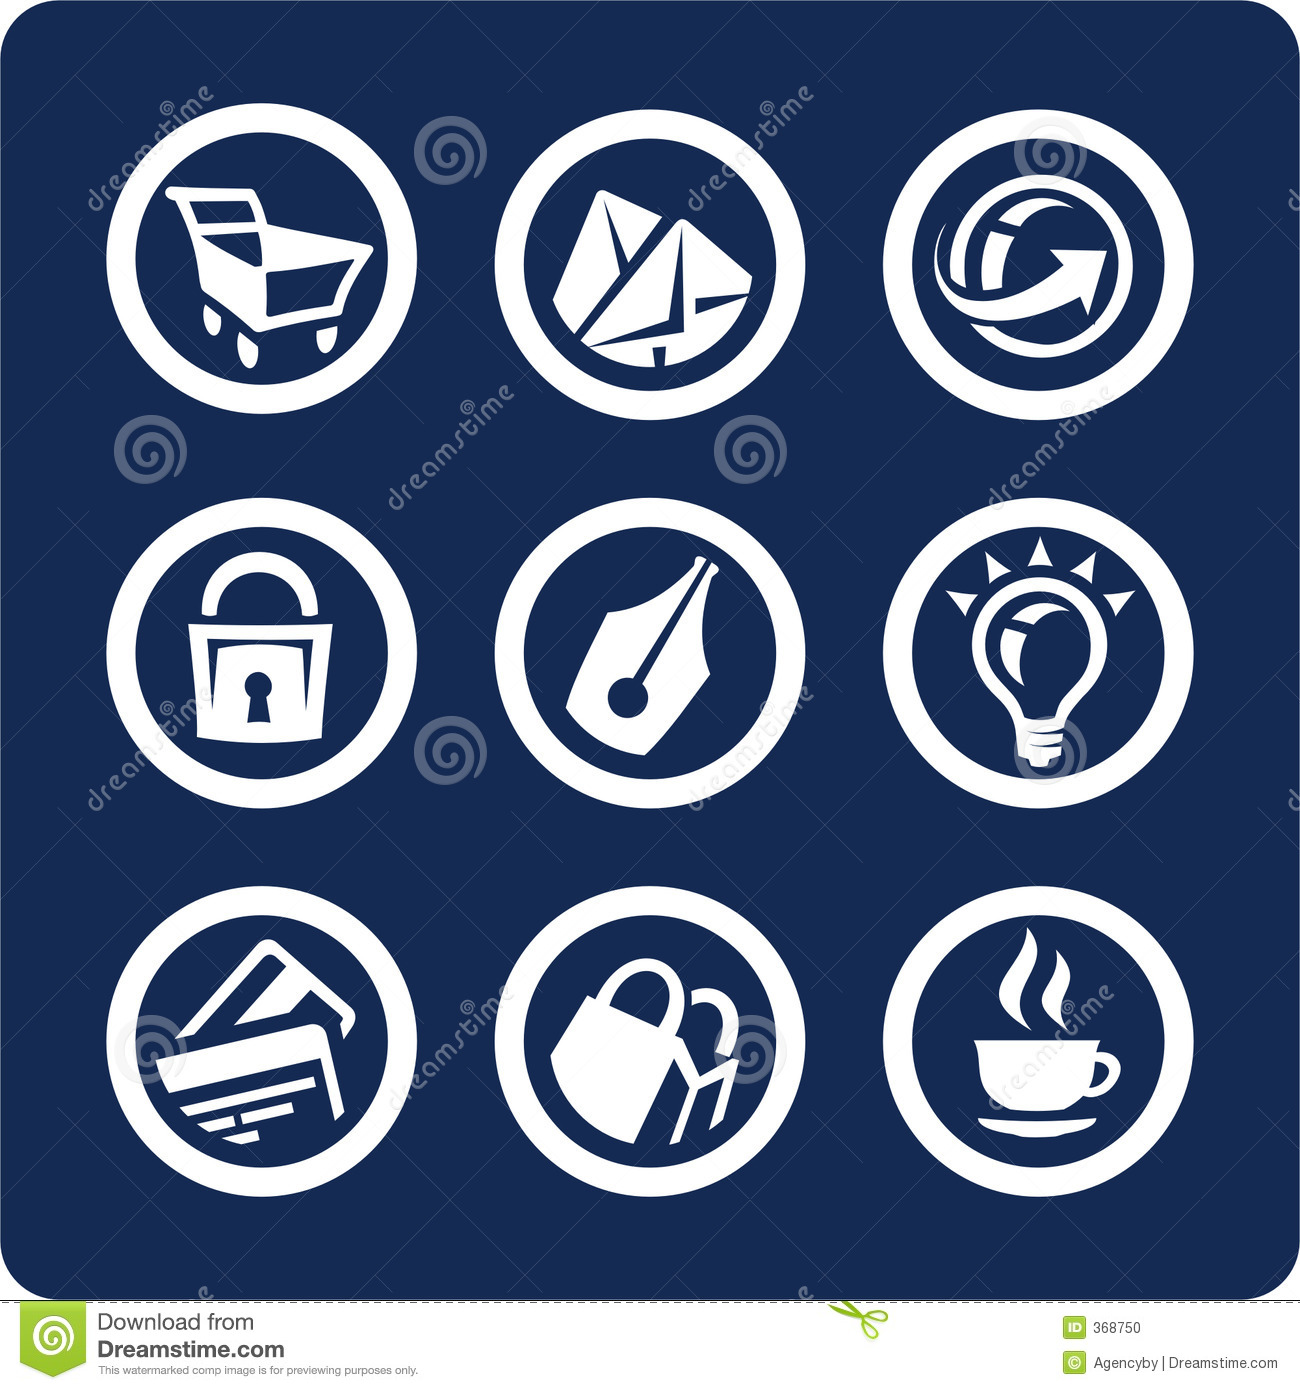 Website and Internet icons (set 2, part 2)